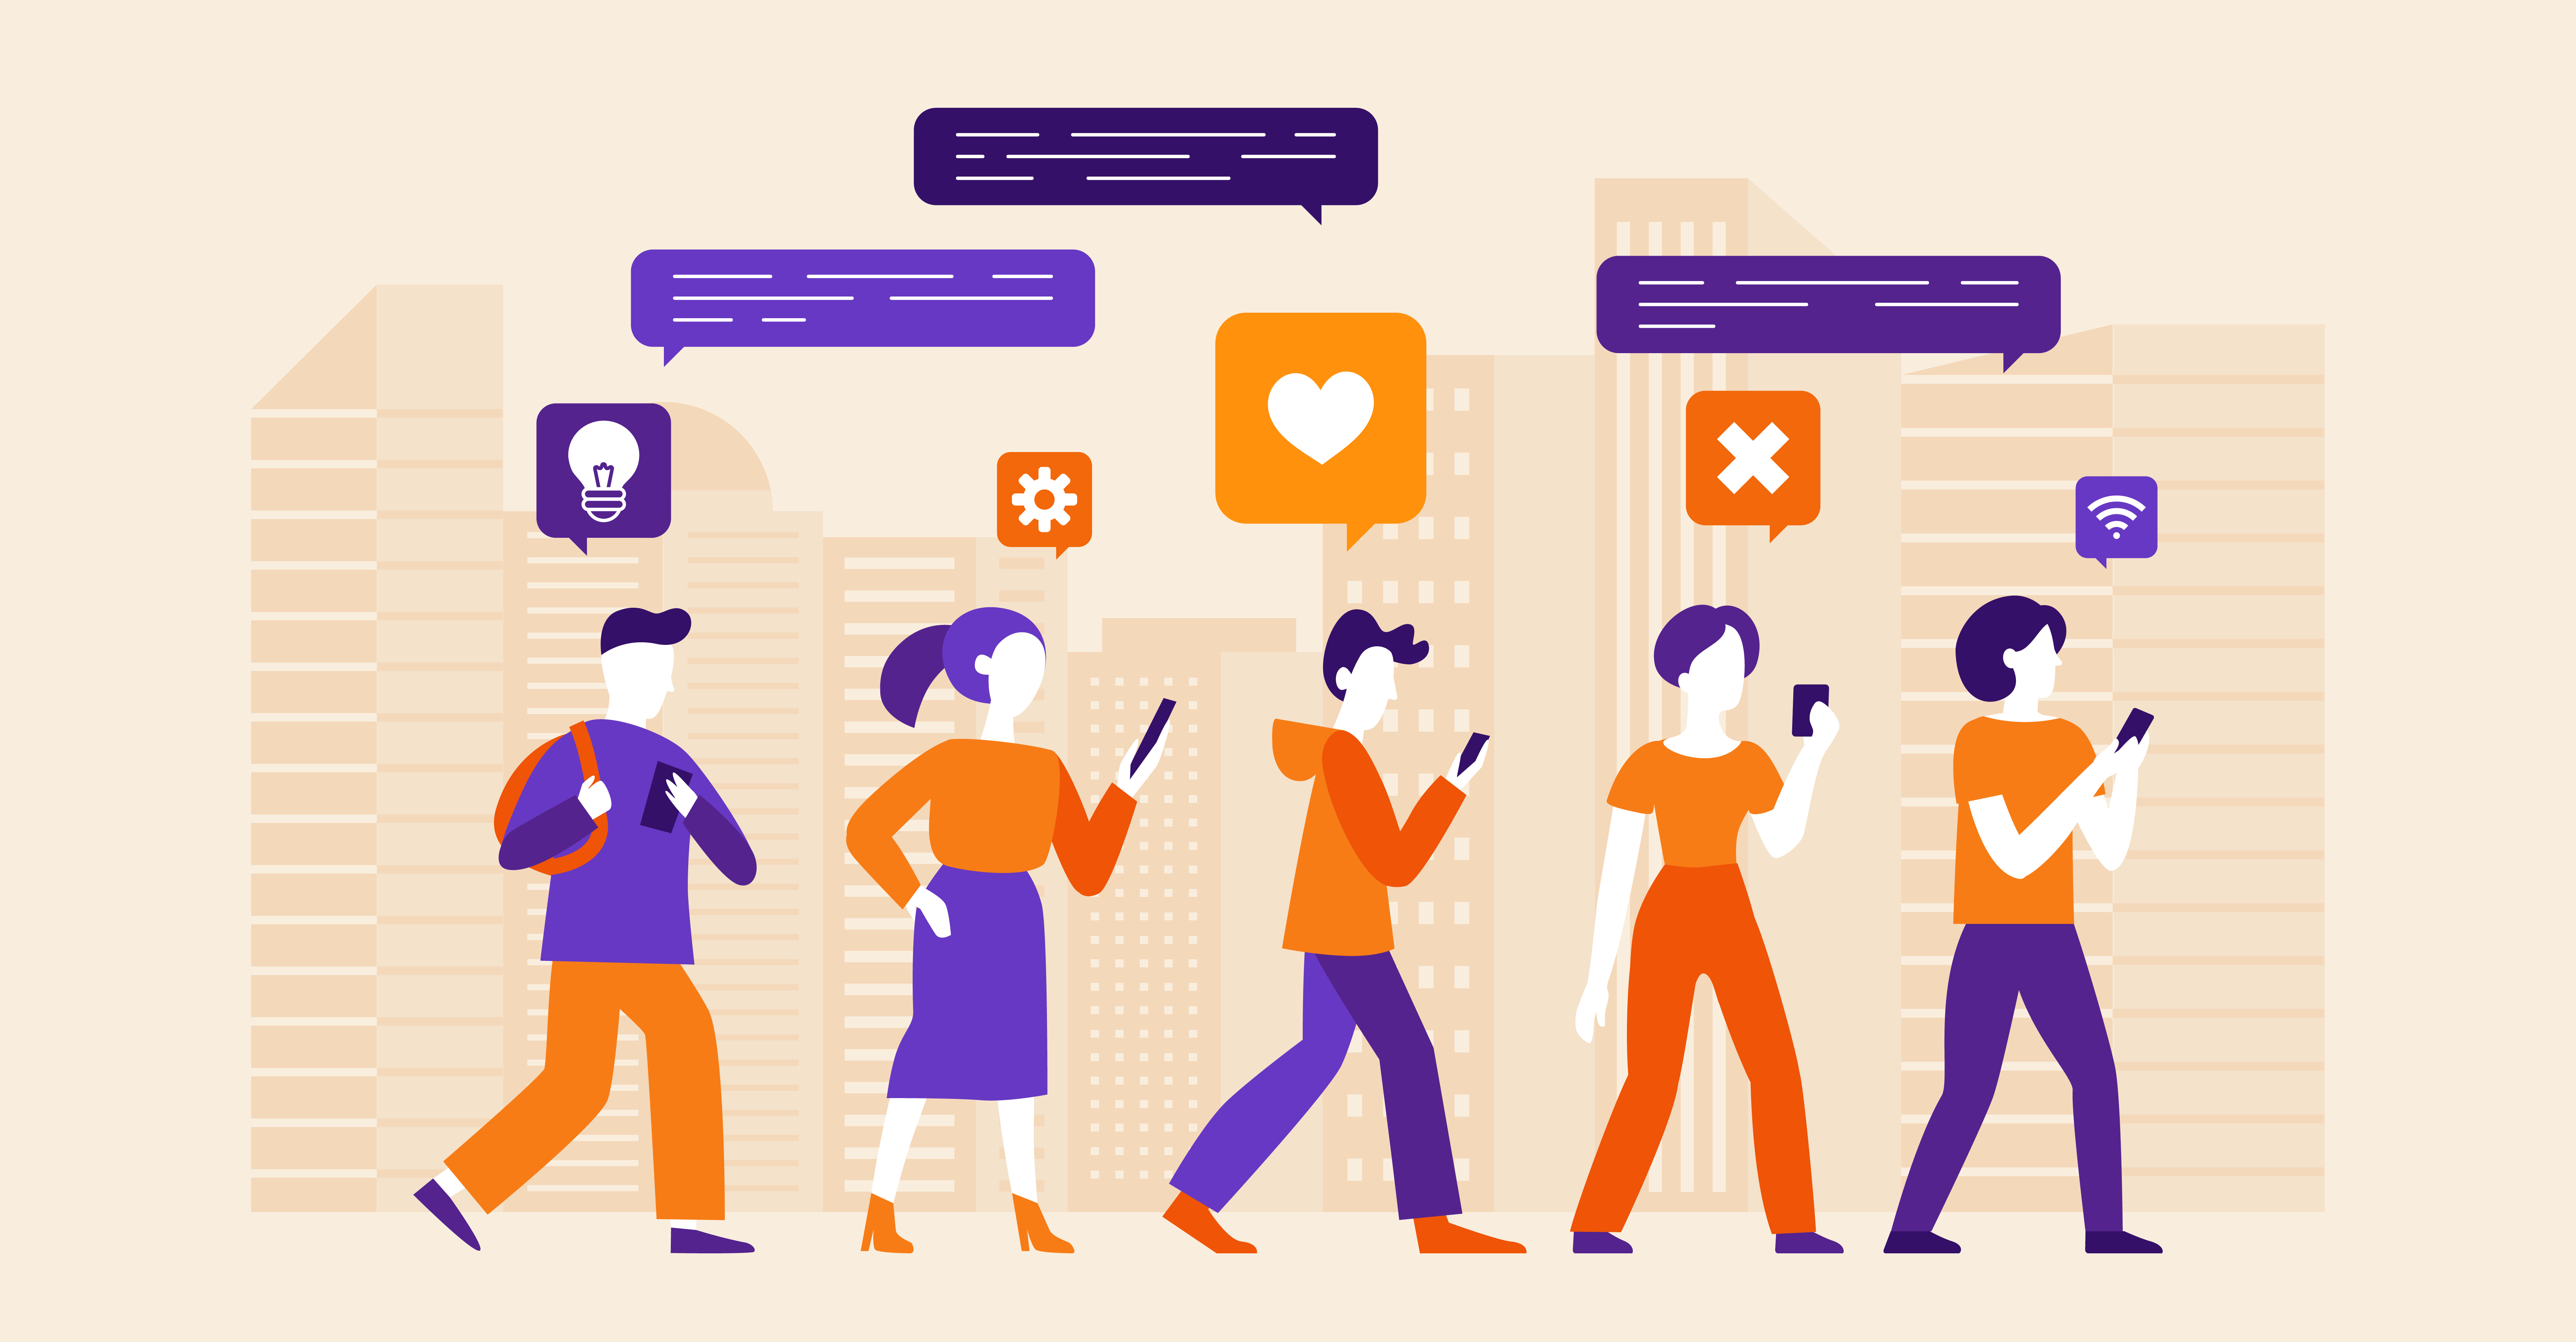 35 social media pros reveal the most important trends for social media marketers to know in 2019